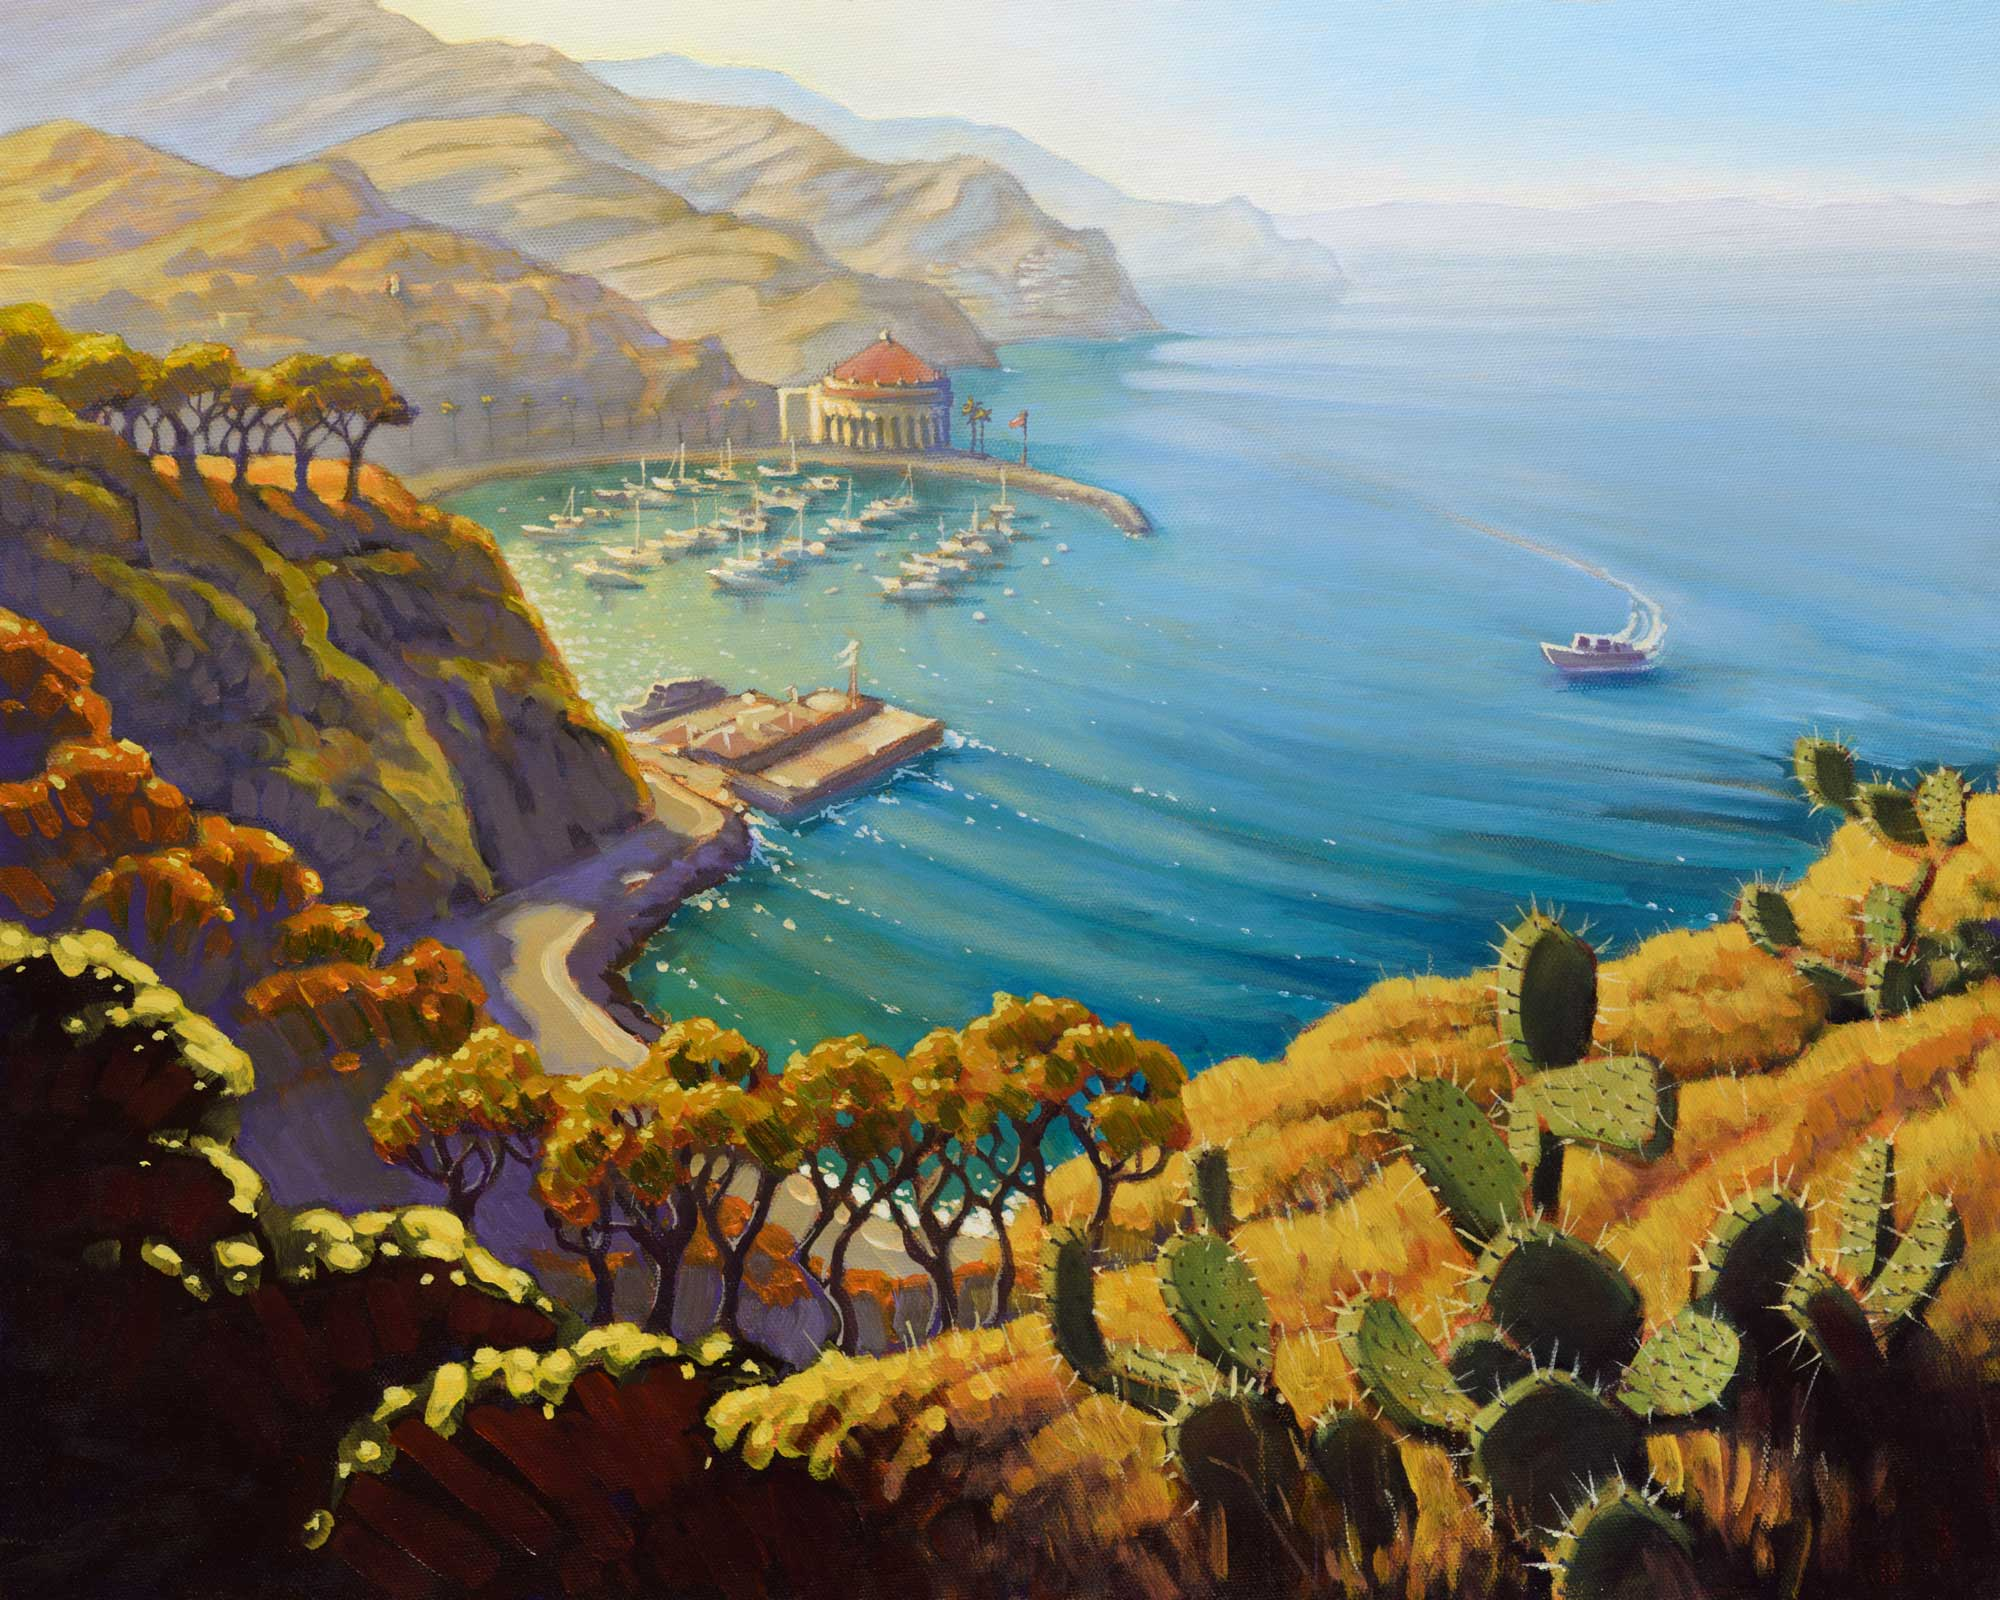 A plein air painting of the view over Avalon Harbor on Catalina Island off the coast of southern California